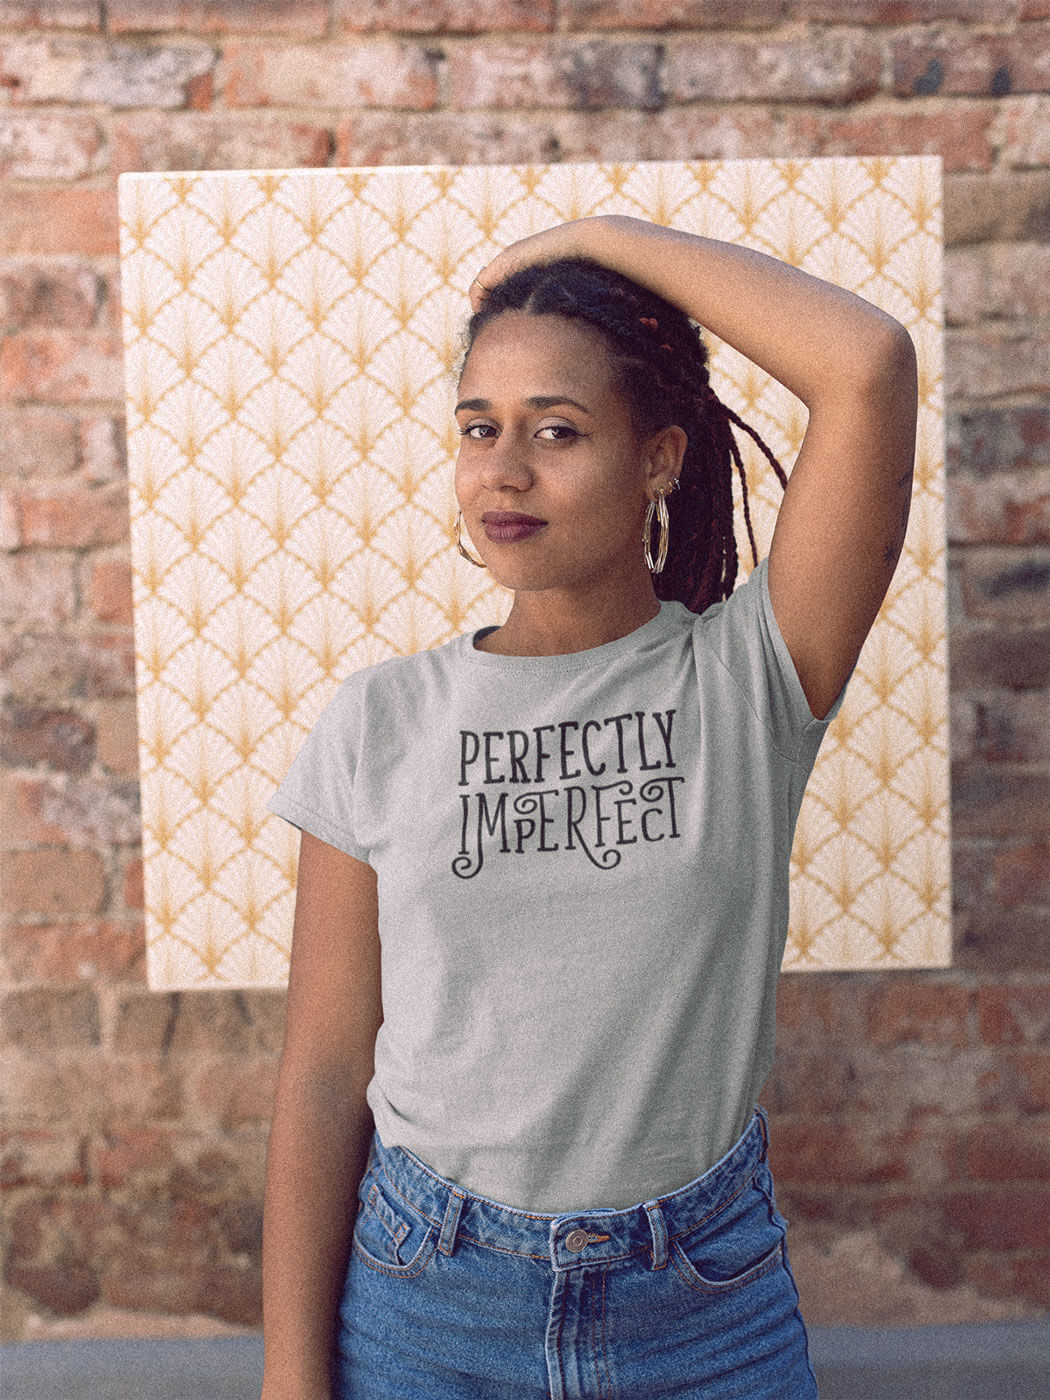 Woman Wearing Perfectly Imperfect Grey Autism T-Shirt Brick Background